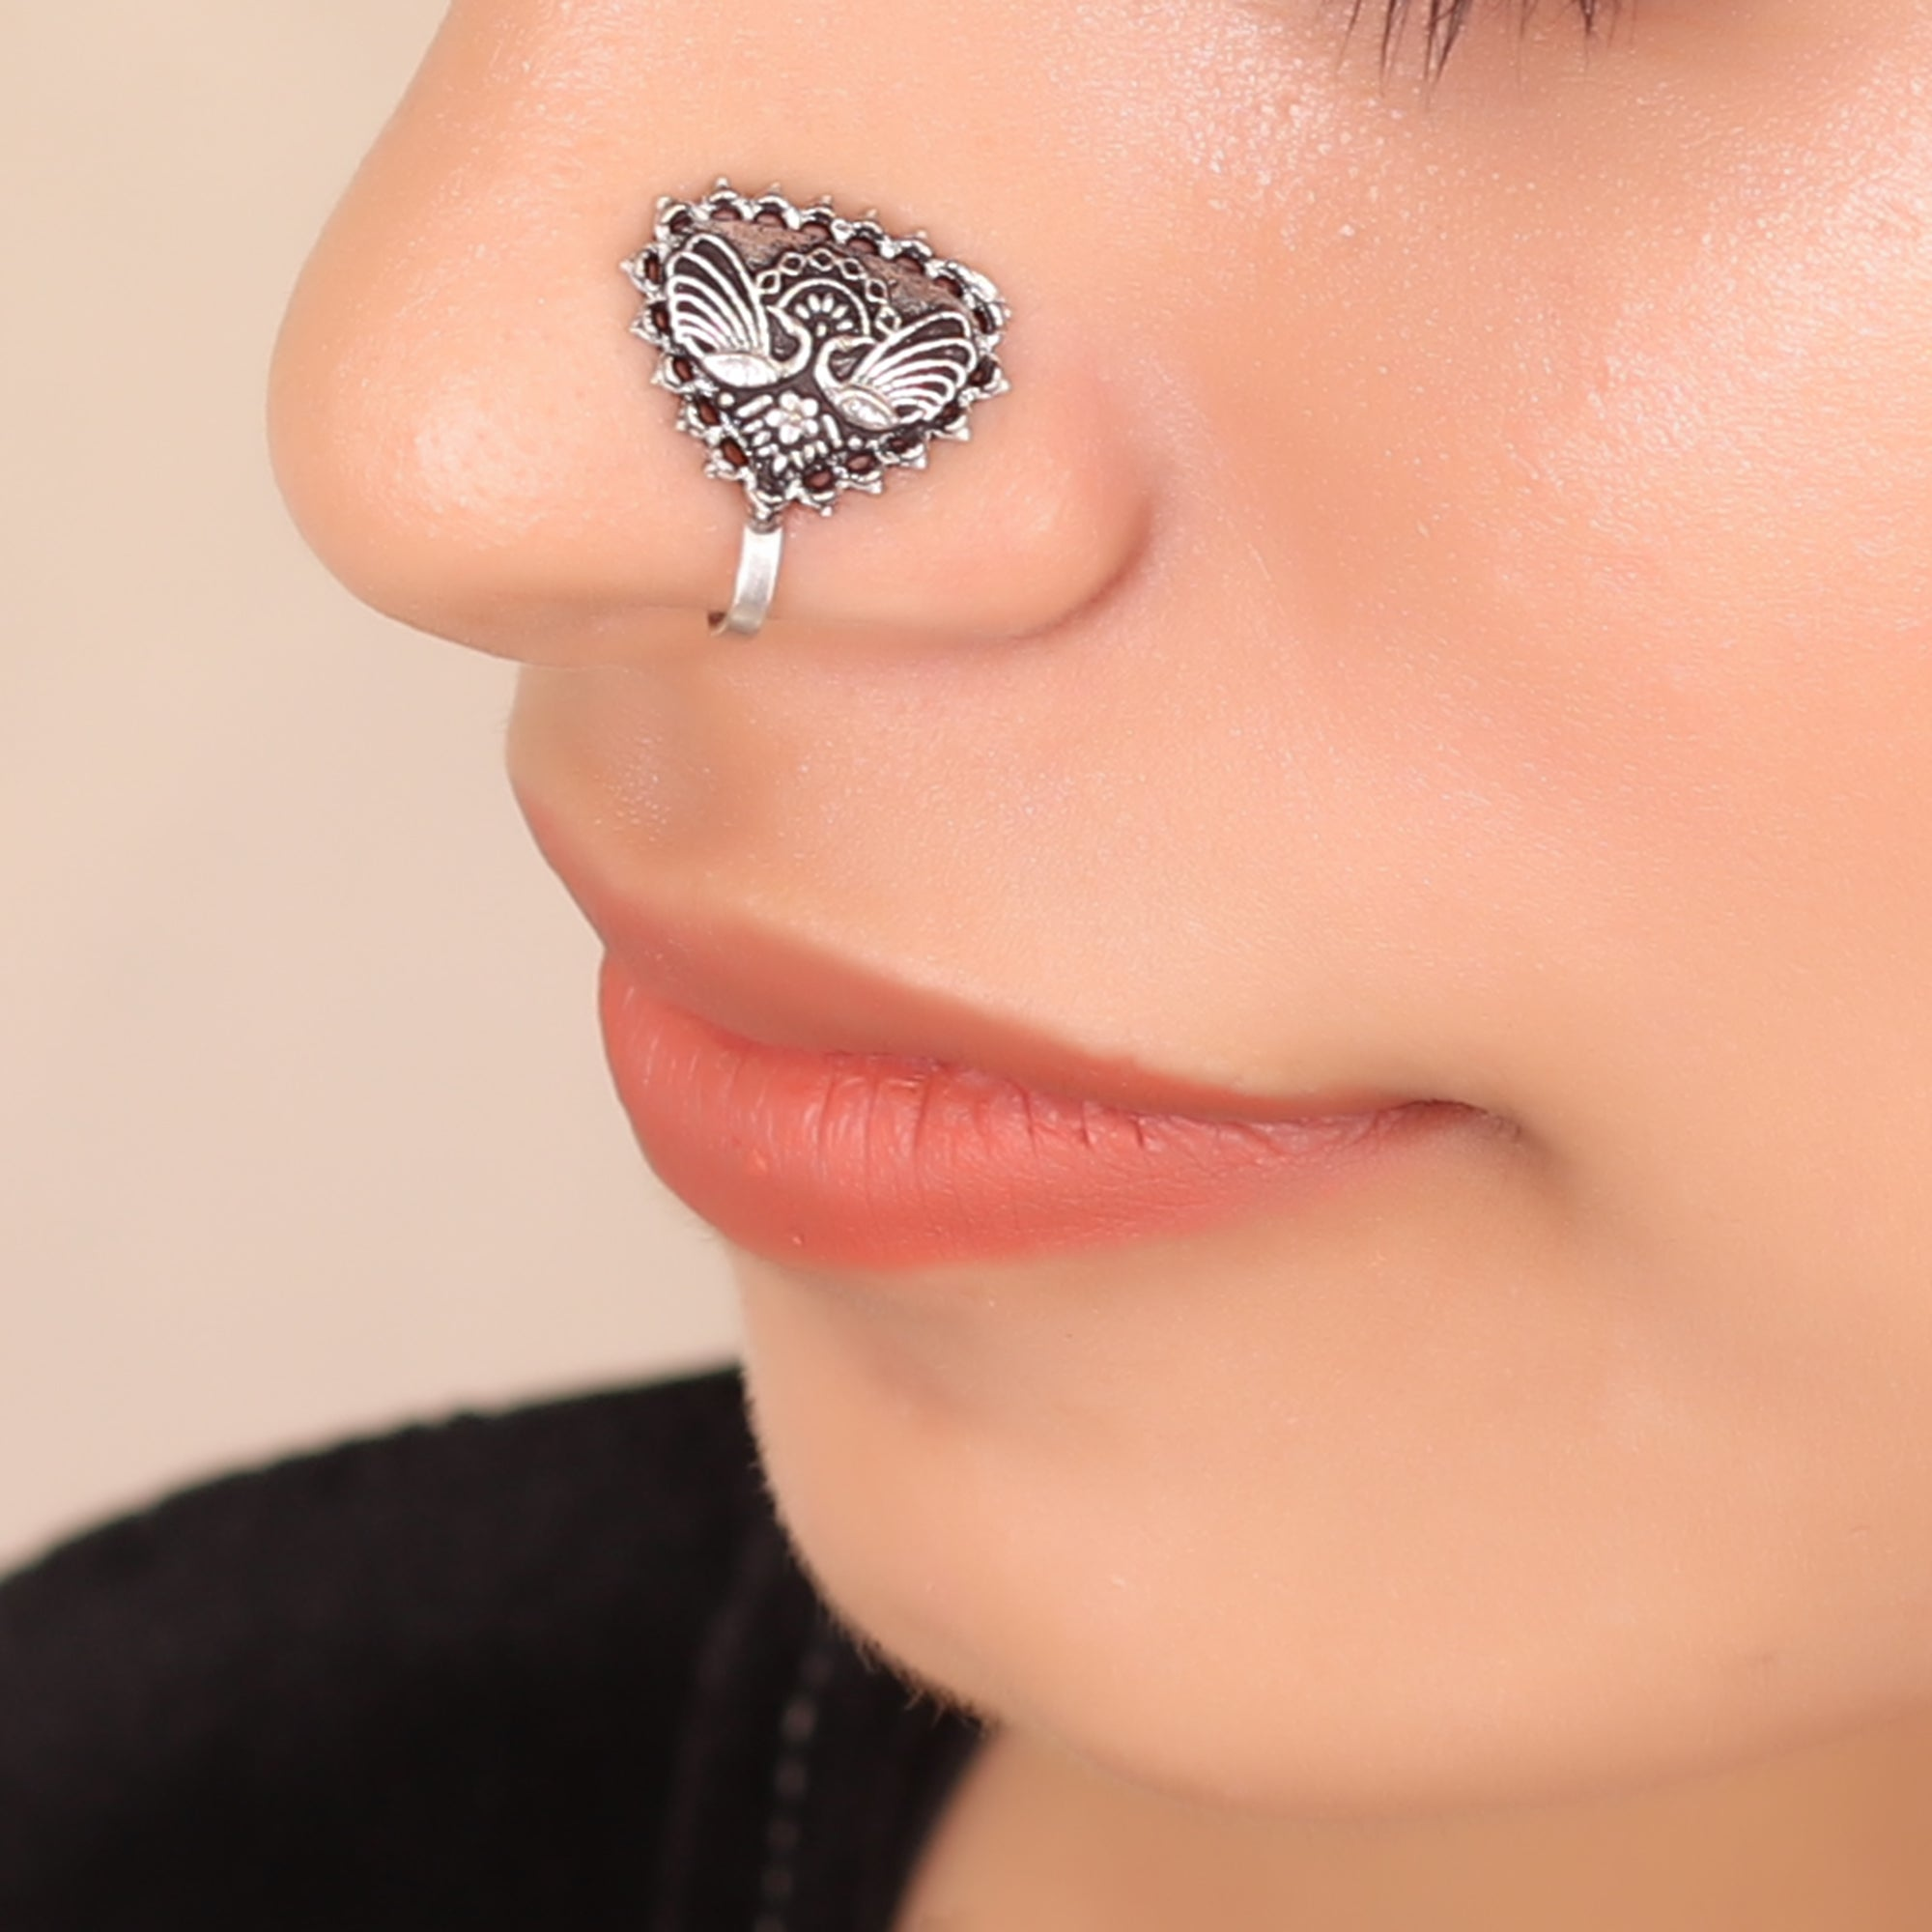 The Winged Triangle Nose Pin